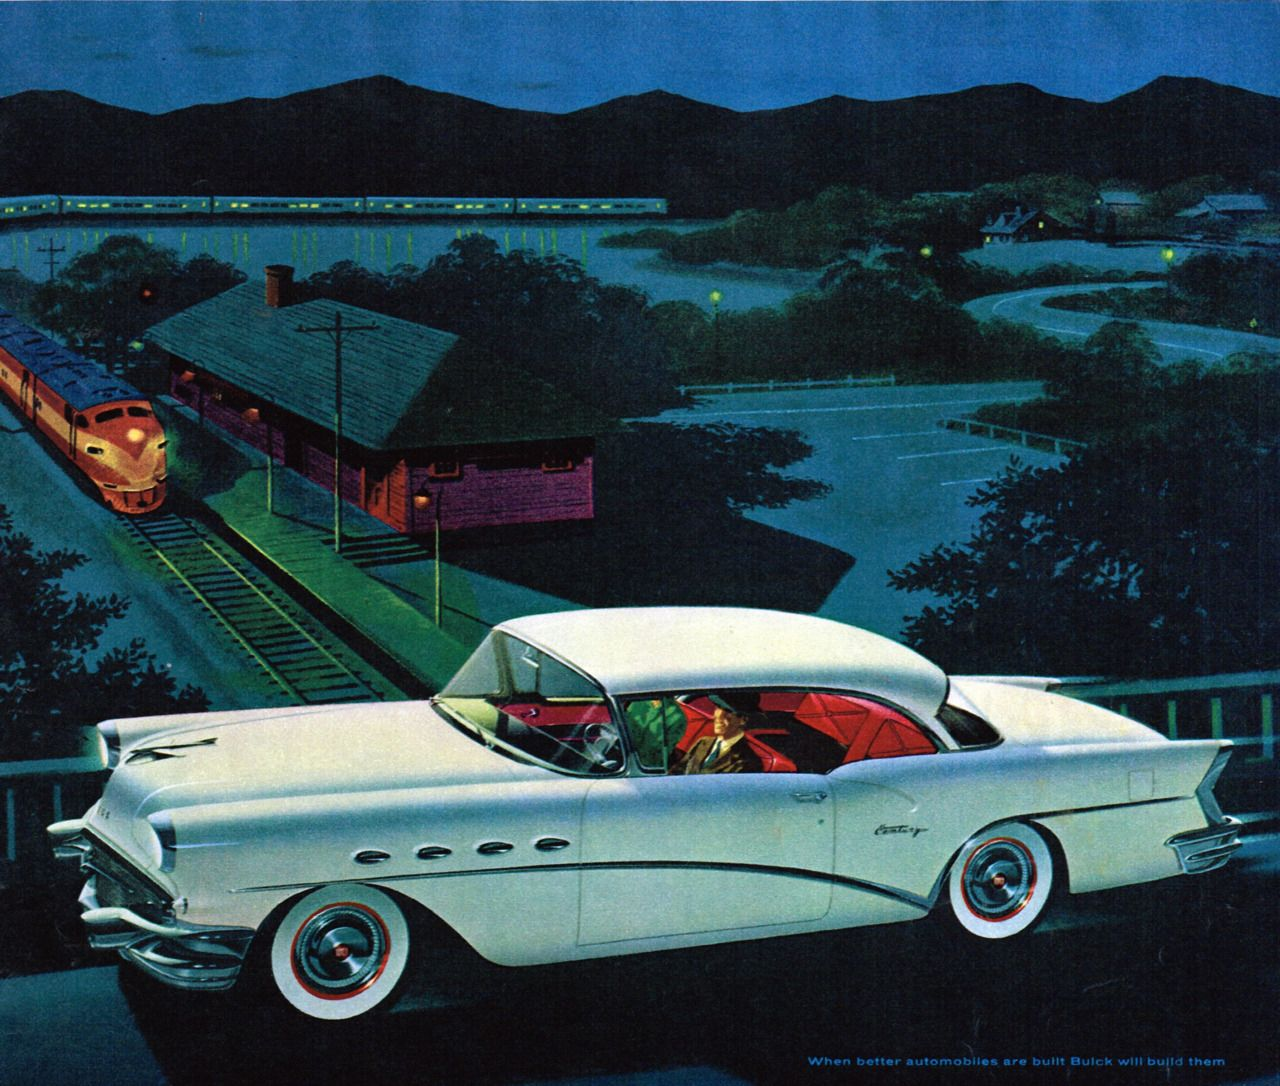 1956 Buick - A classic